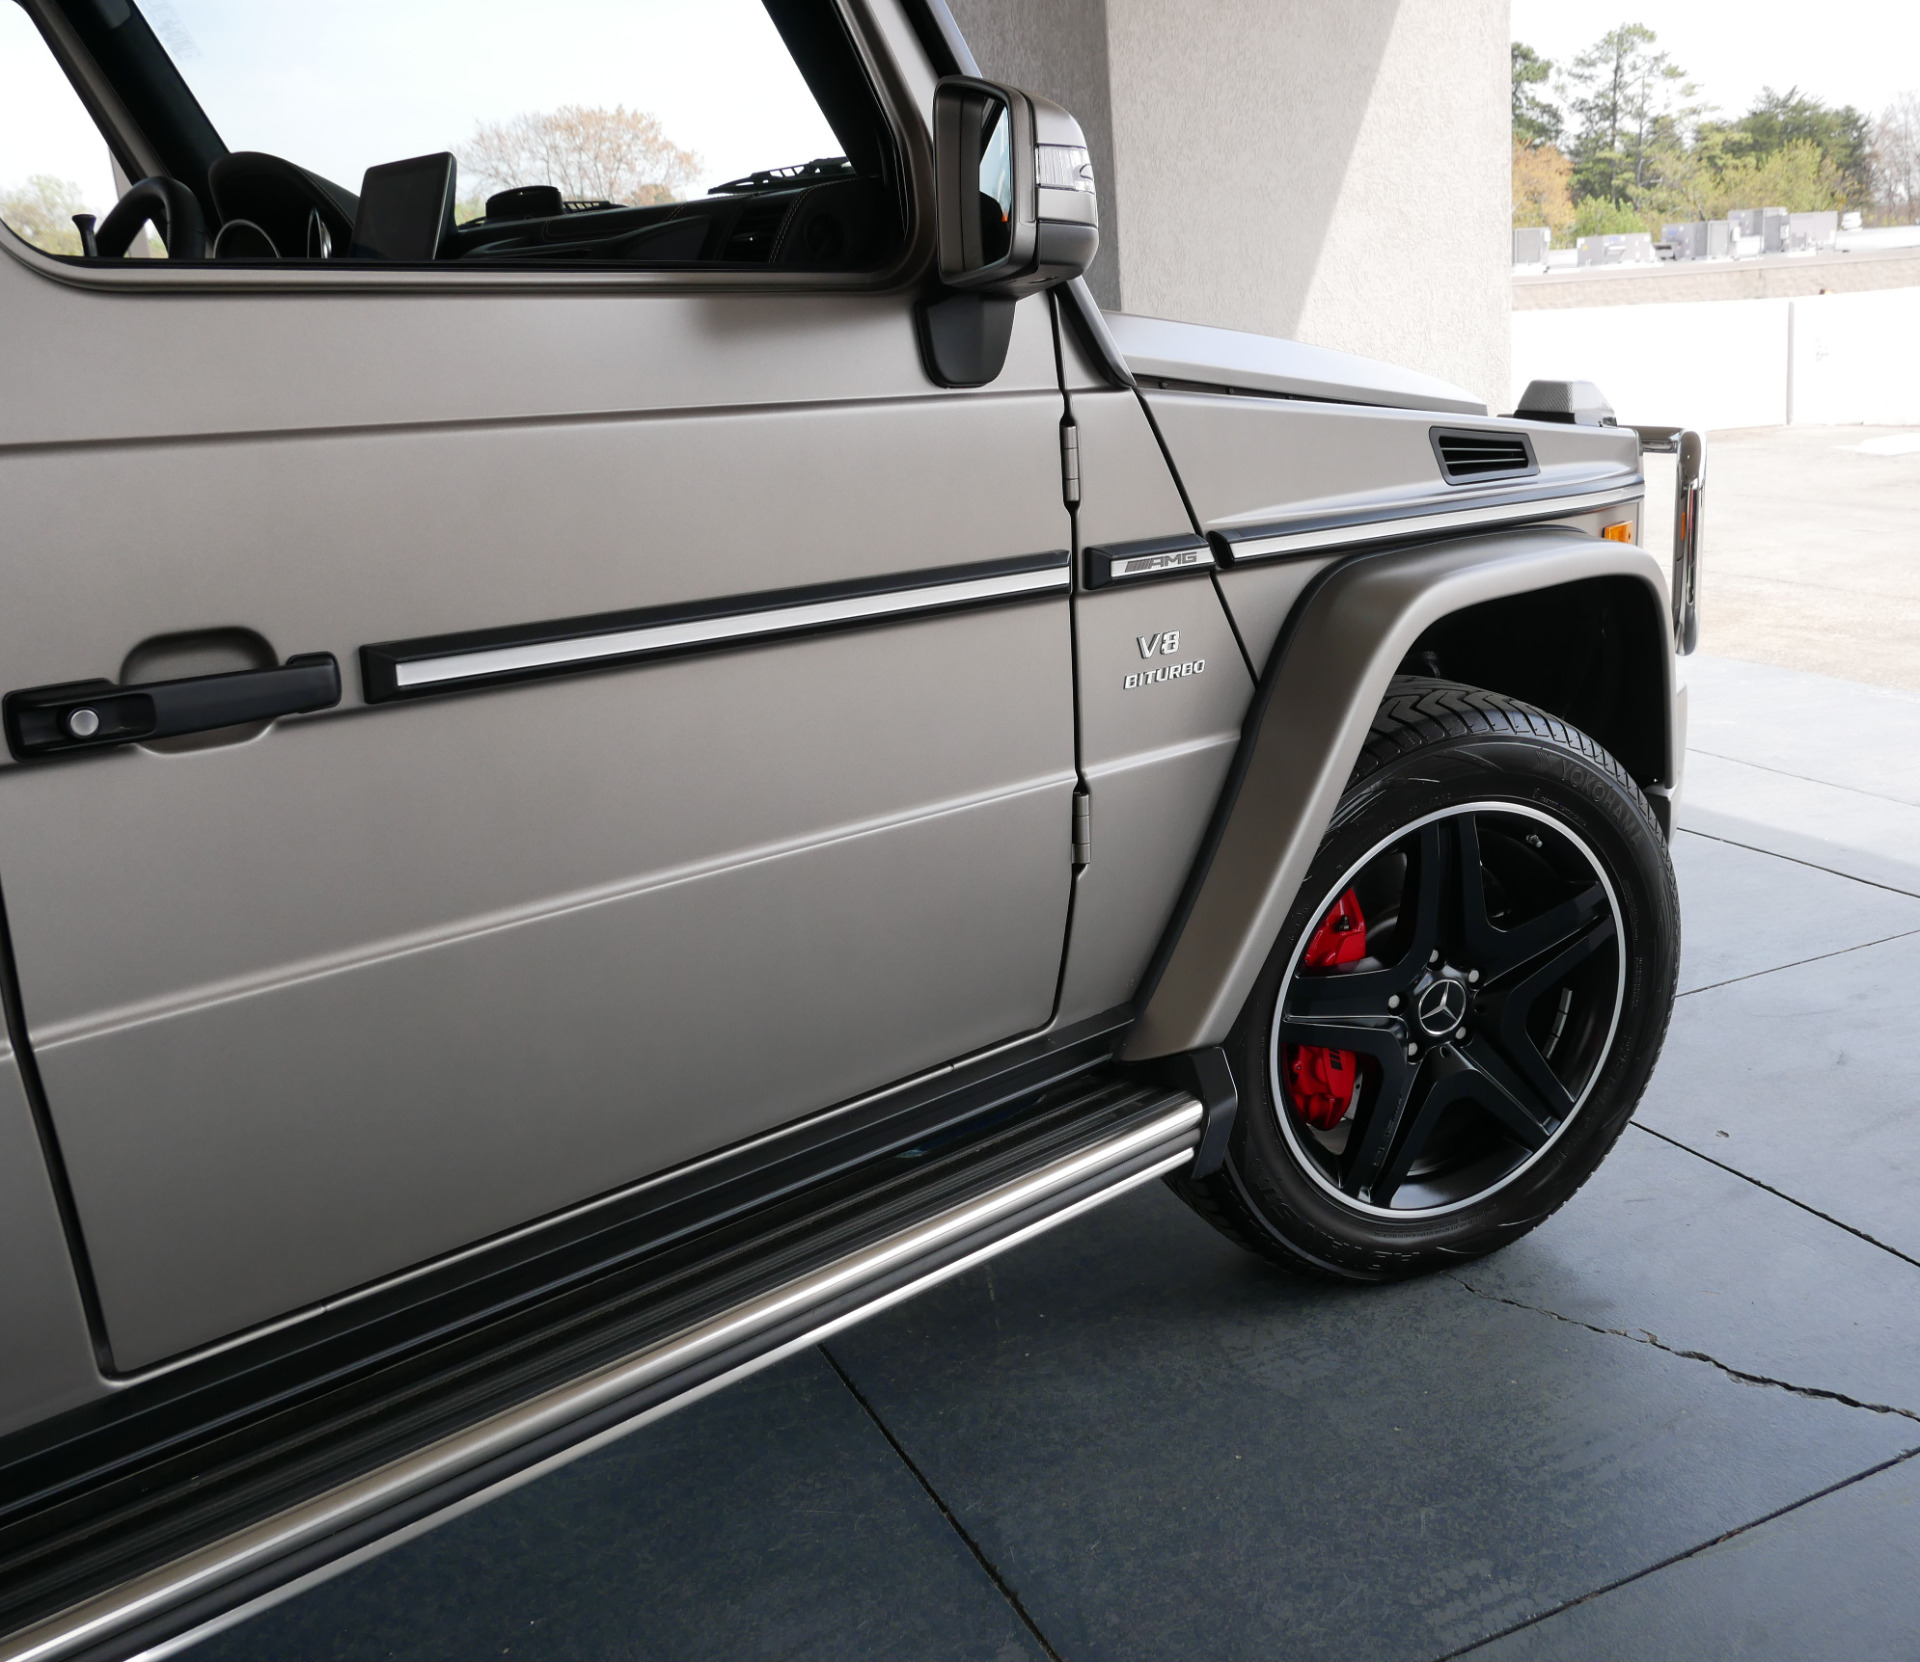 Mercedes Benz G63 Used: Used 2018 Mercedes-Benz G-Class G63 AMG